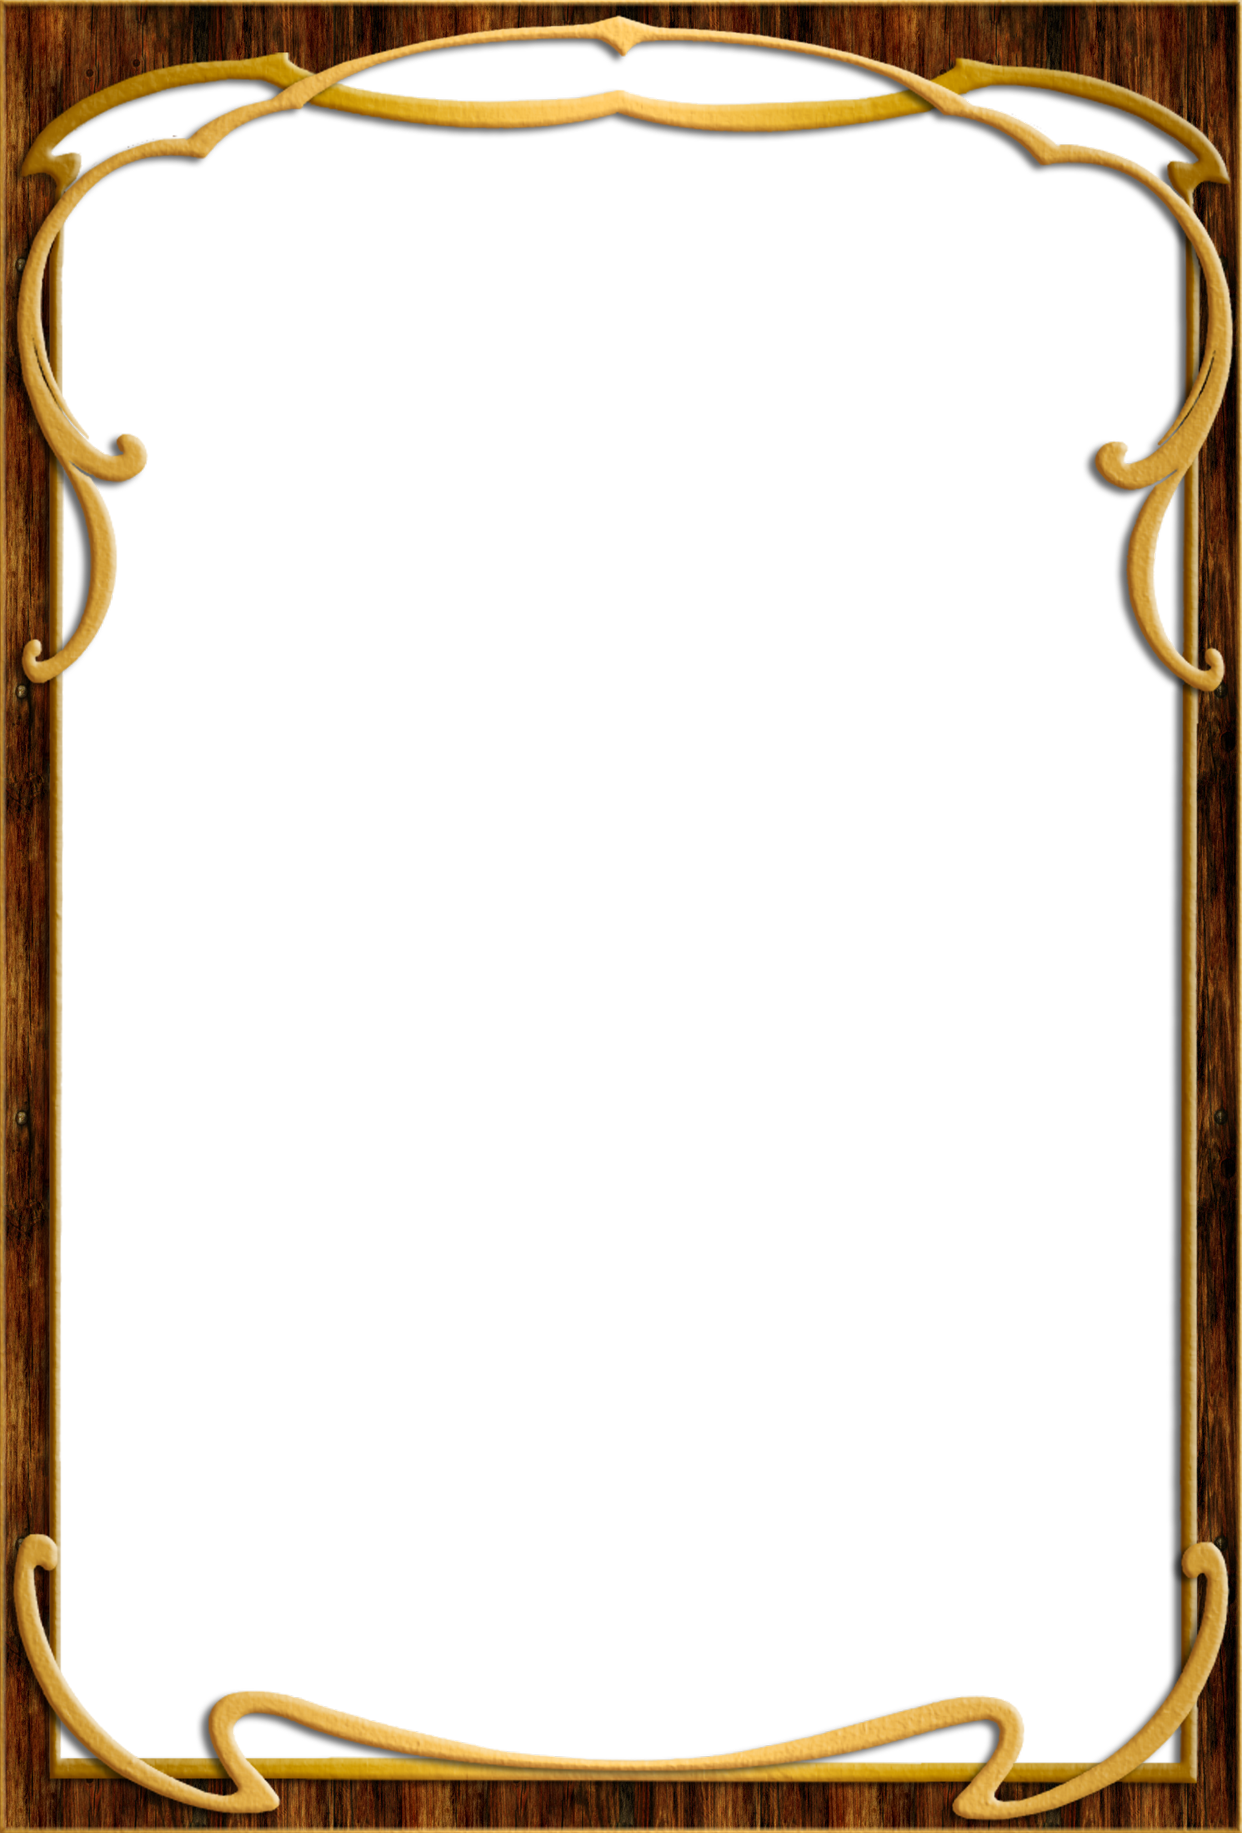 Home gt;gt; Objects gt;gt; Photo Frame gt; Wood frame png PNG image